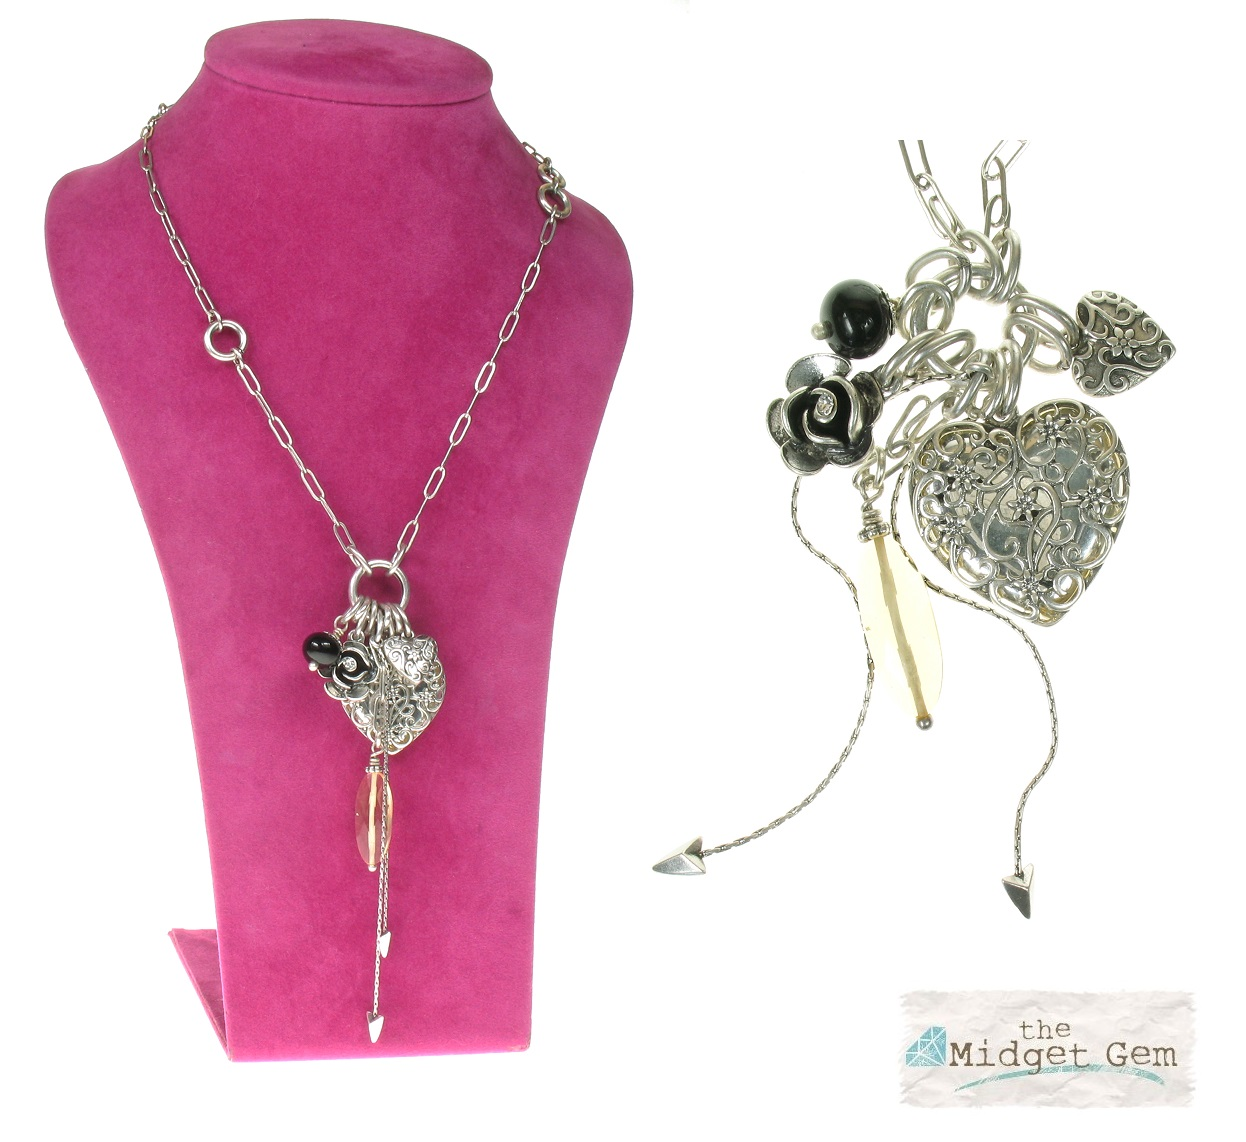 The Bohm - Summer Lovin' - Heart Locket Long Necklace - Black/Silver Plate